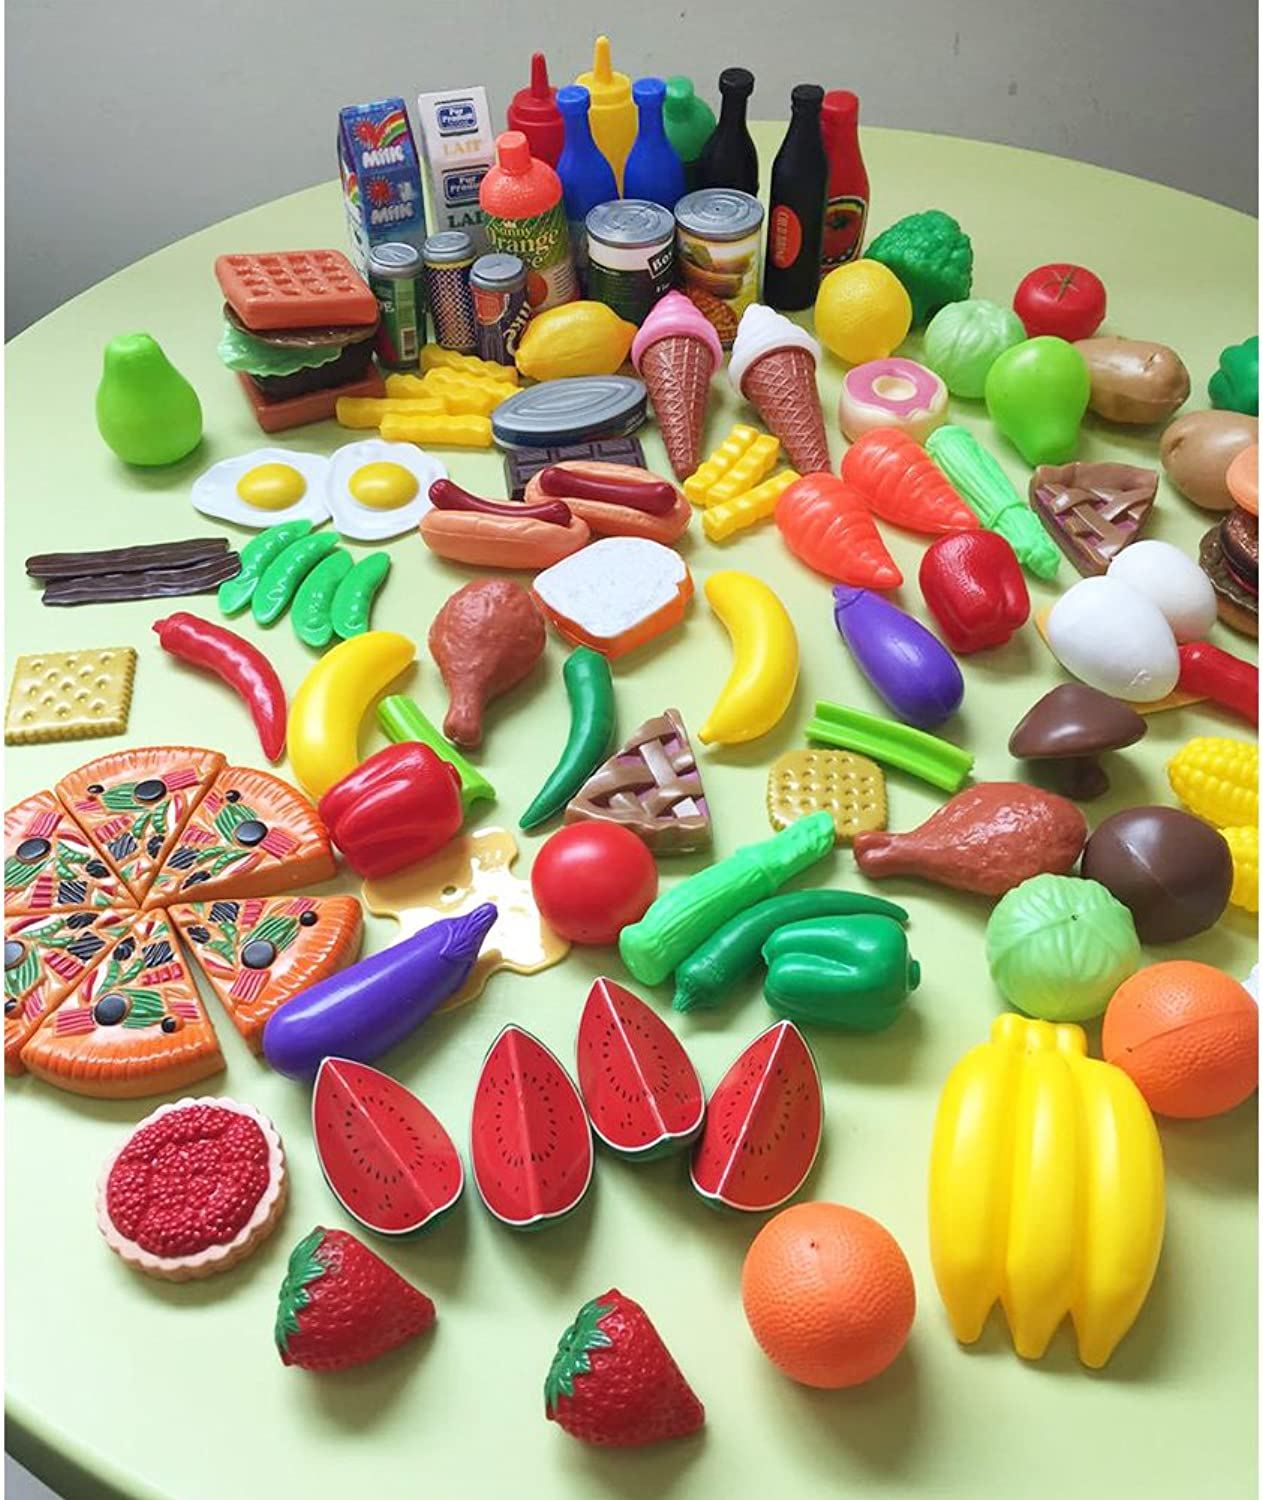 OUYAWEI 120 Pcs Plastic Food Fruits Vegetables Toy Set Kitchen Pretend Play Toy for Boys and Girls